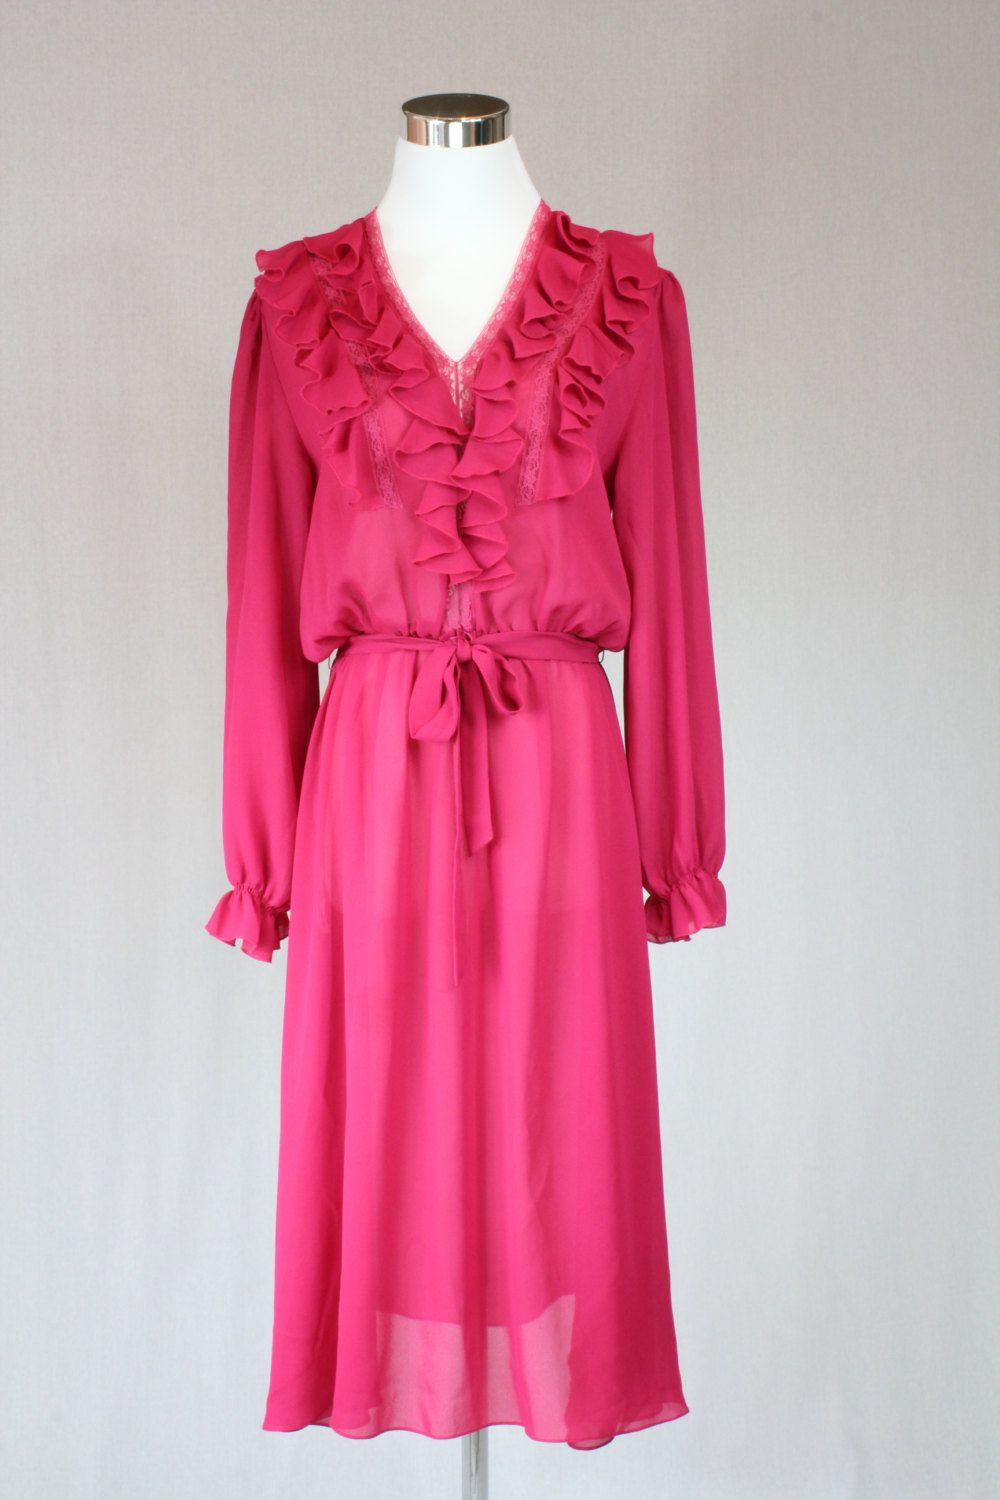 Vintage 60s raspberry pink chiffon cocktail dress / silky dress ...